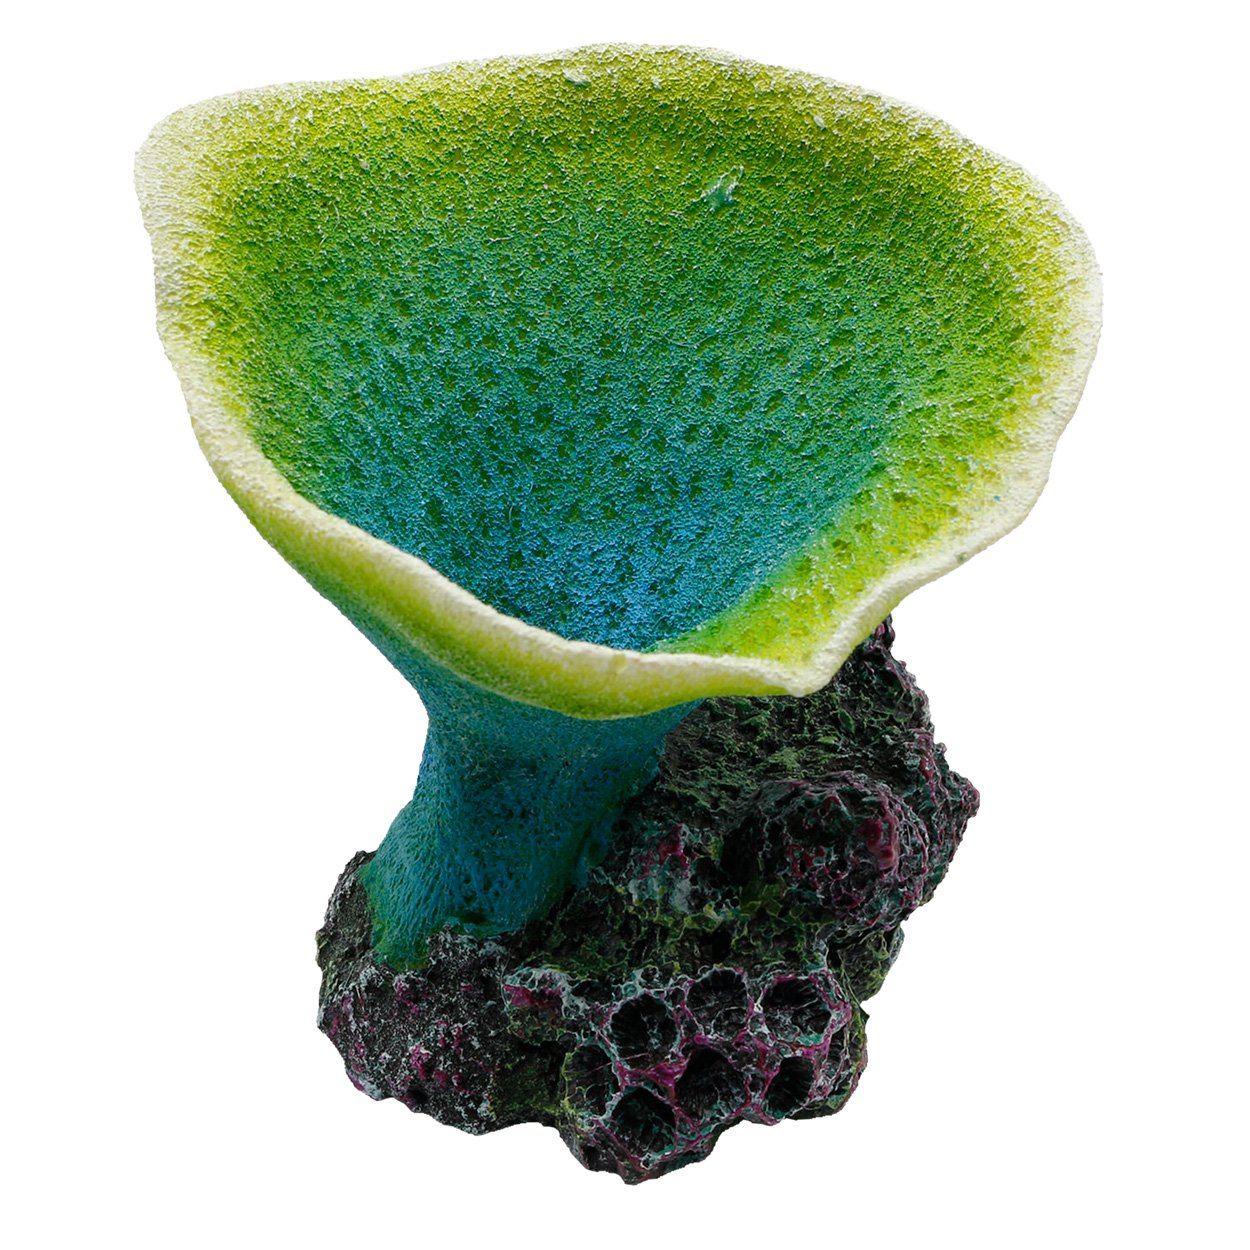 Underwater Treasures Elephant Ear Coral - Green